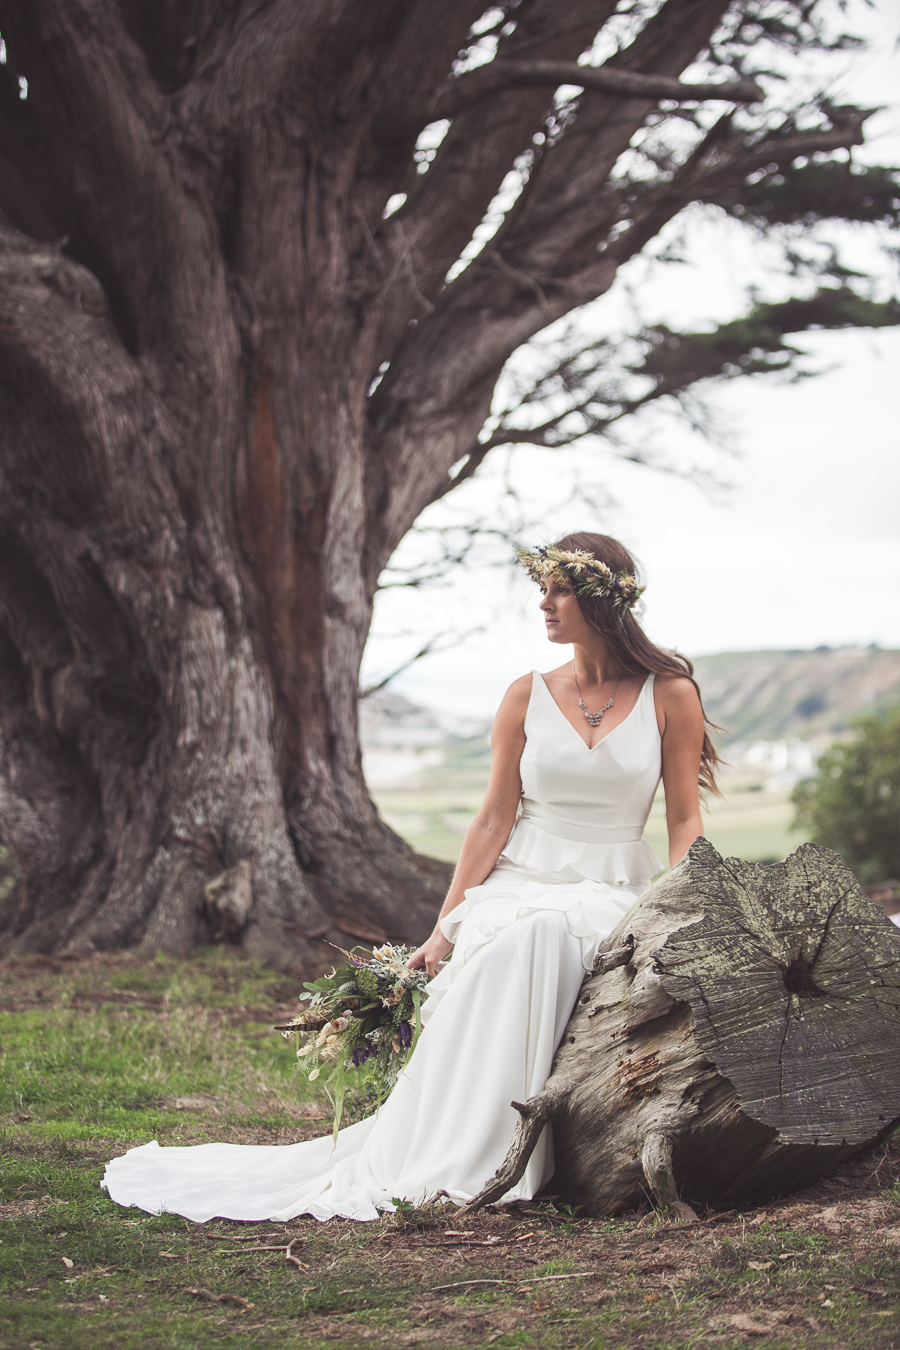 Beach boho wedding styling ideas from the UK, image credit Katie Mortimore (8)